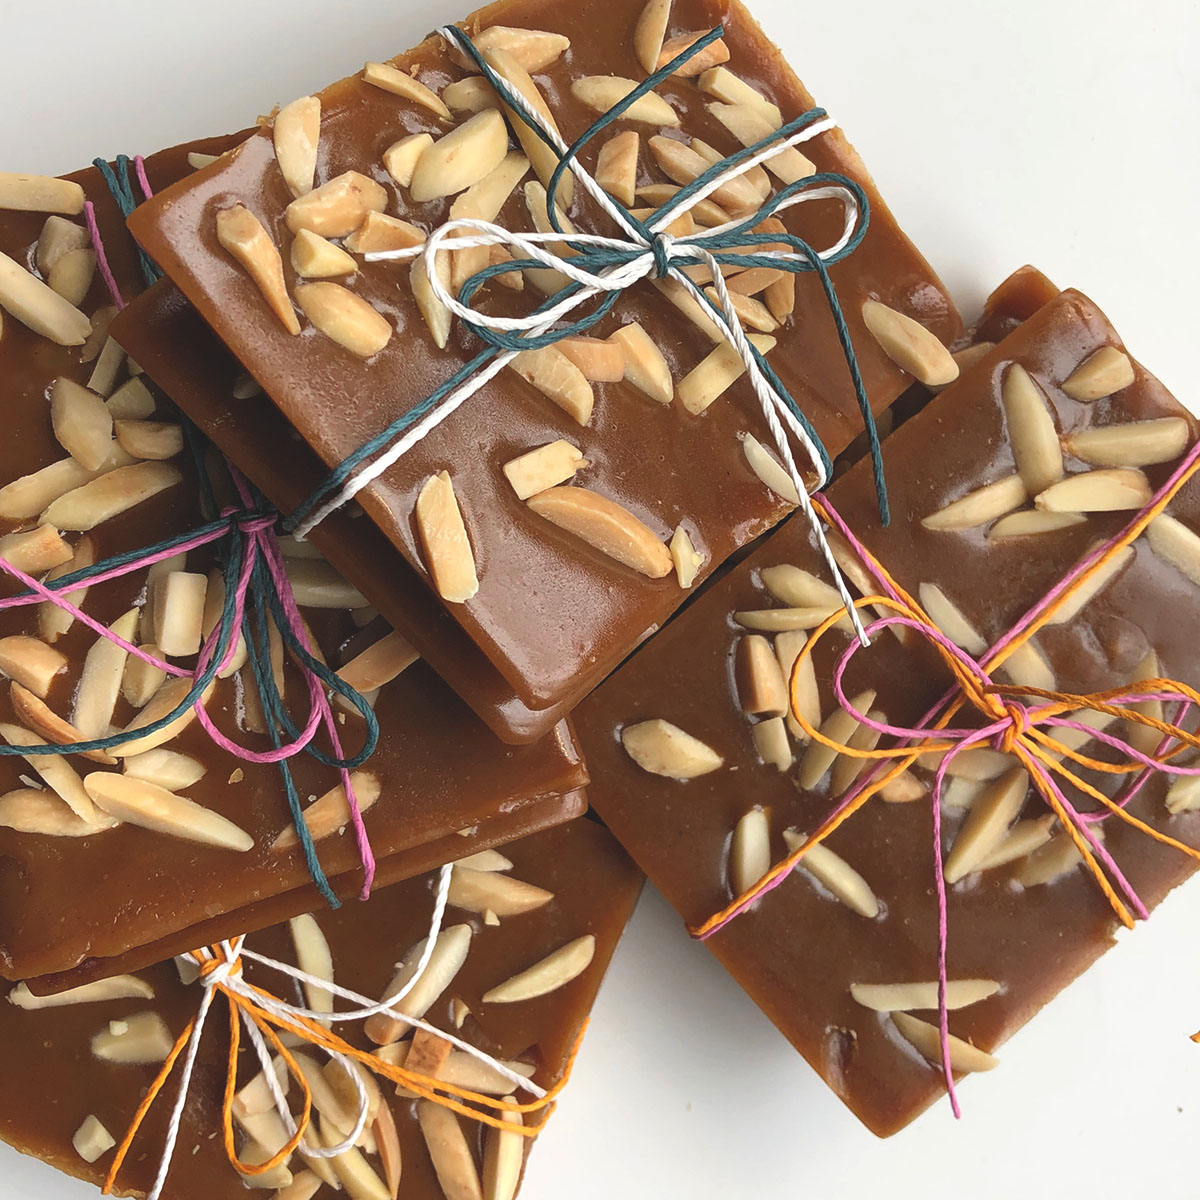 ENGLISH TOFFEE WITH TOASTED ALMOND